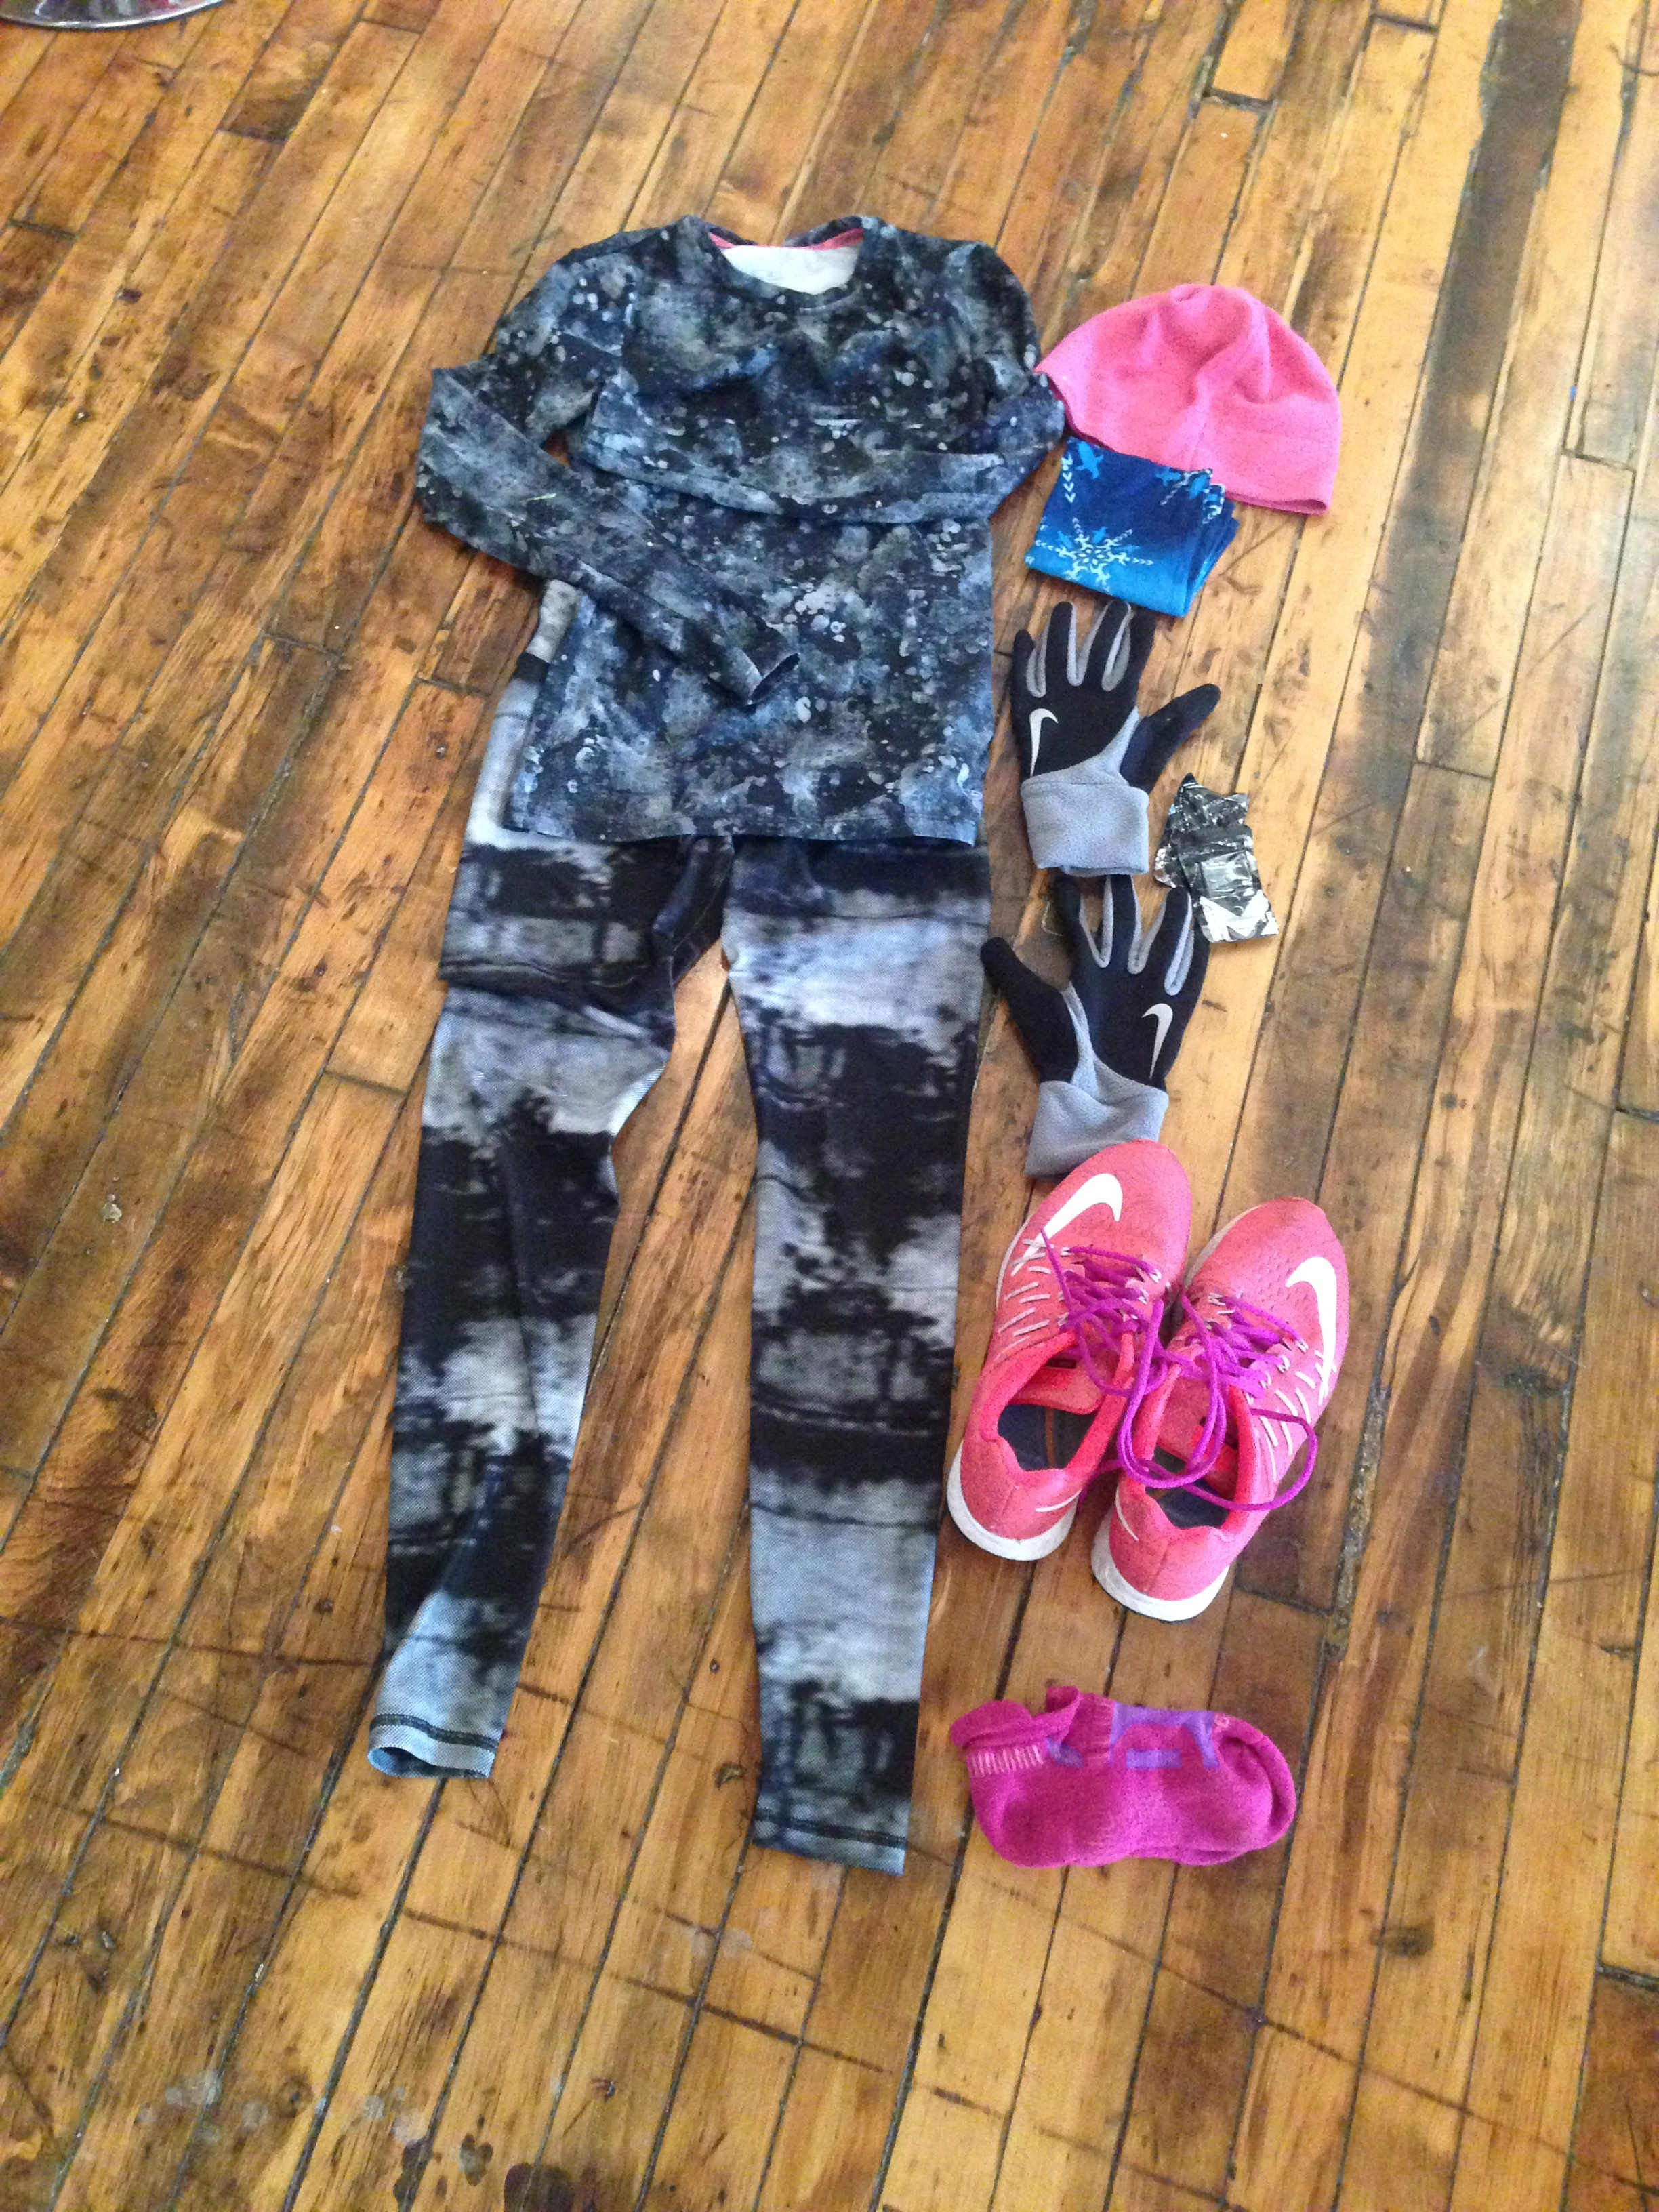 My cold-weather race kit. Not the most attractive combination but it worked. While running, I felt just right. Just warm enough but not constrained.